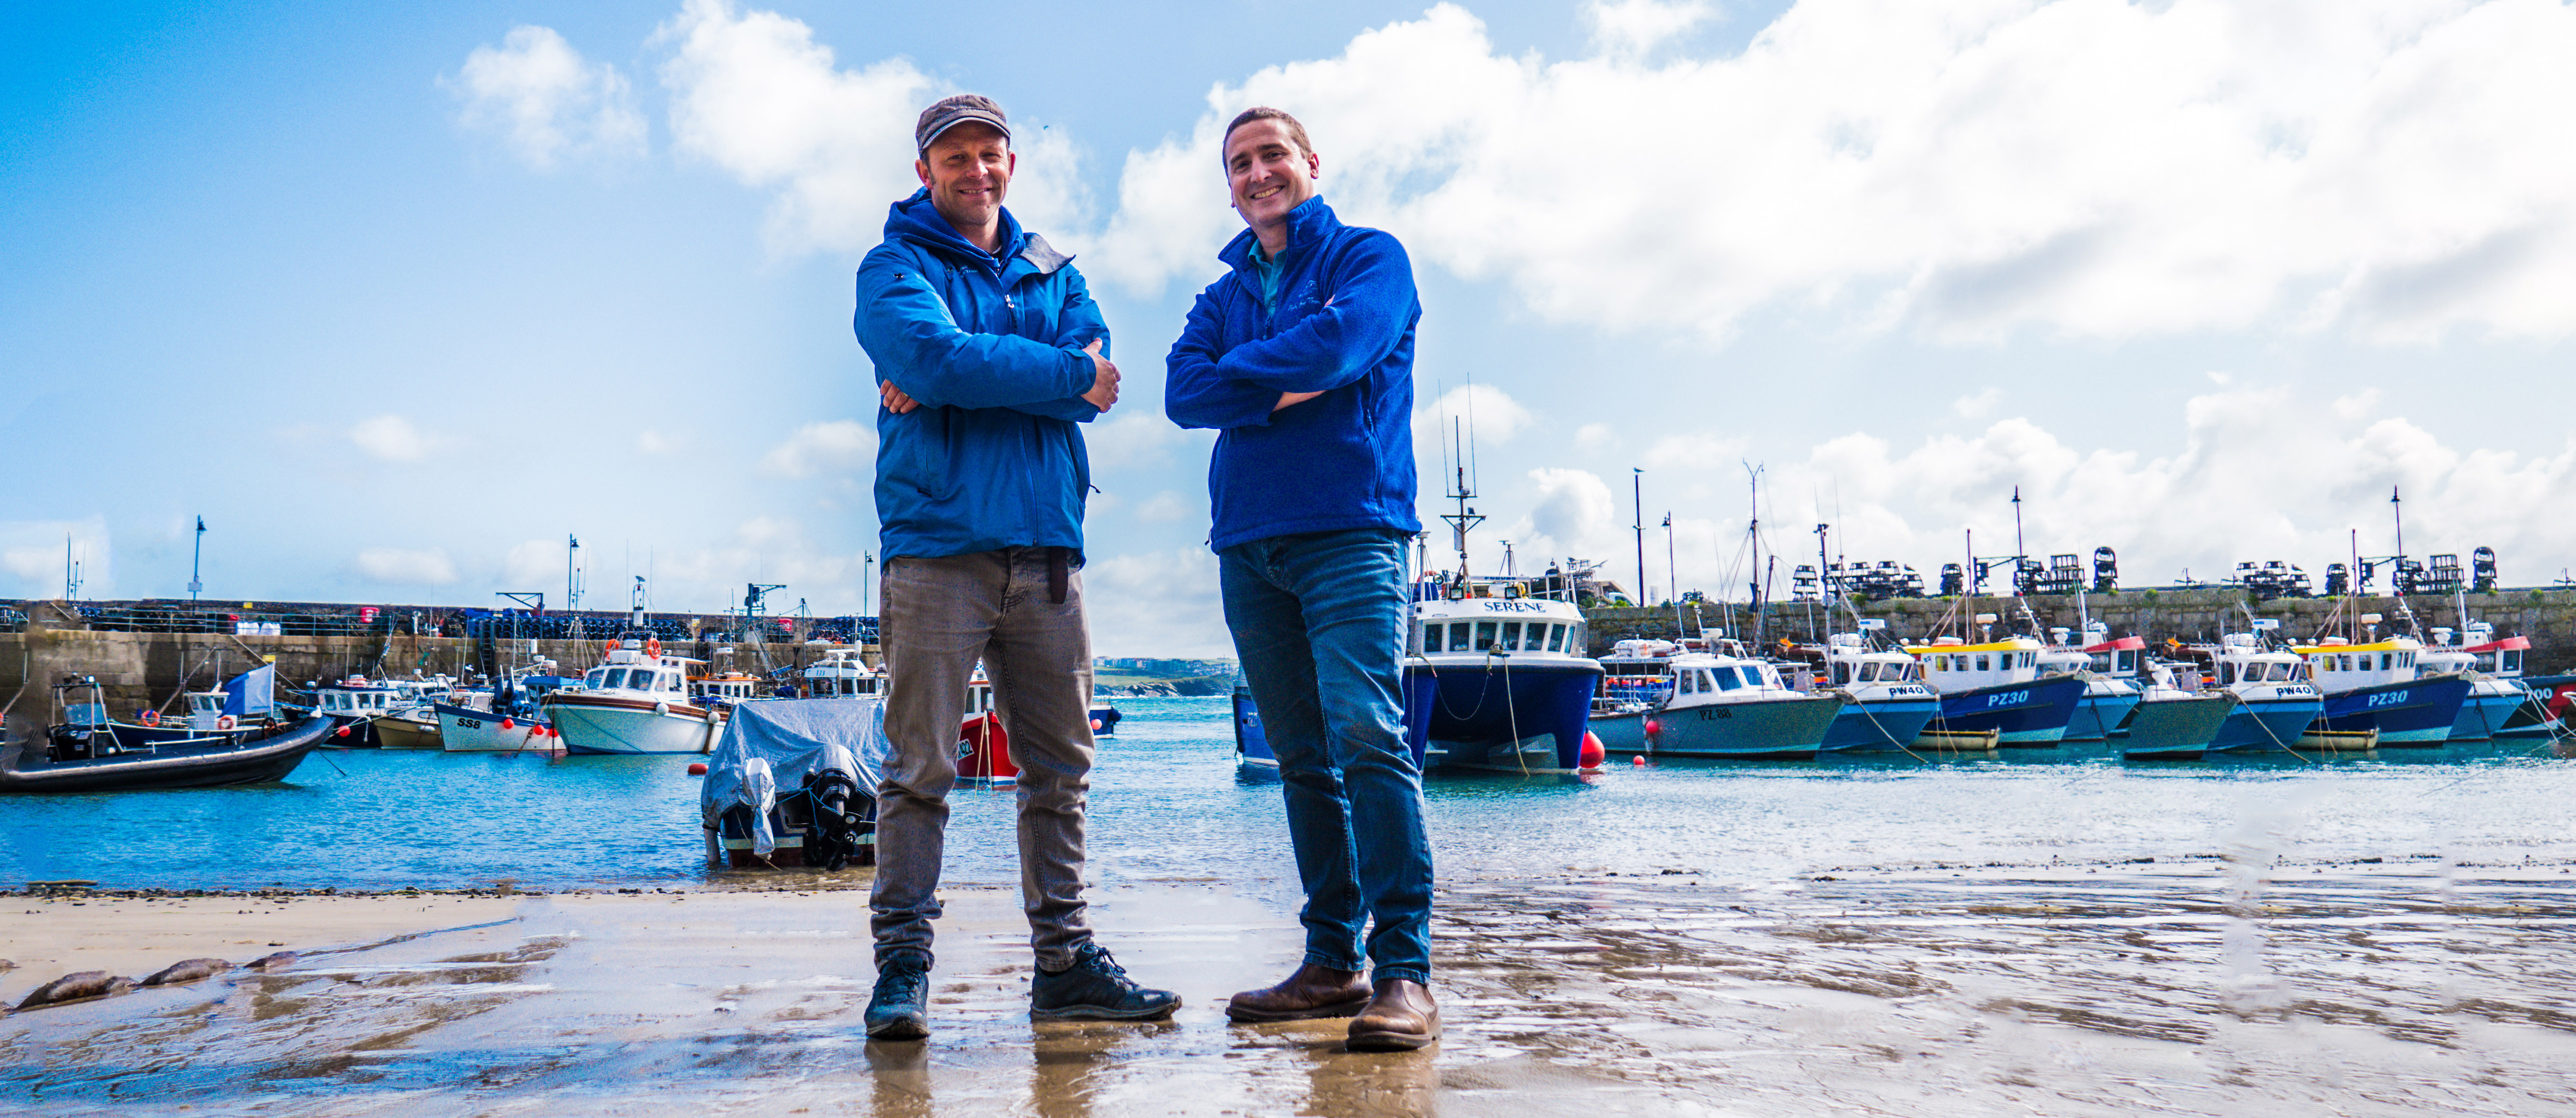 https://res.cloudinary.com/fish-for-thought/image/upload/Cornwall%20Good%20Seafood%20Guide_1528285121